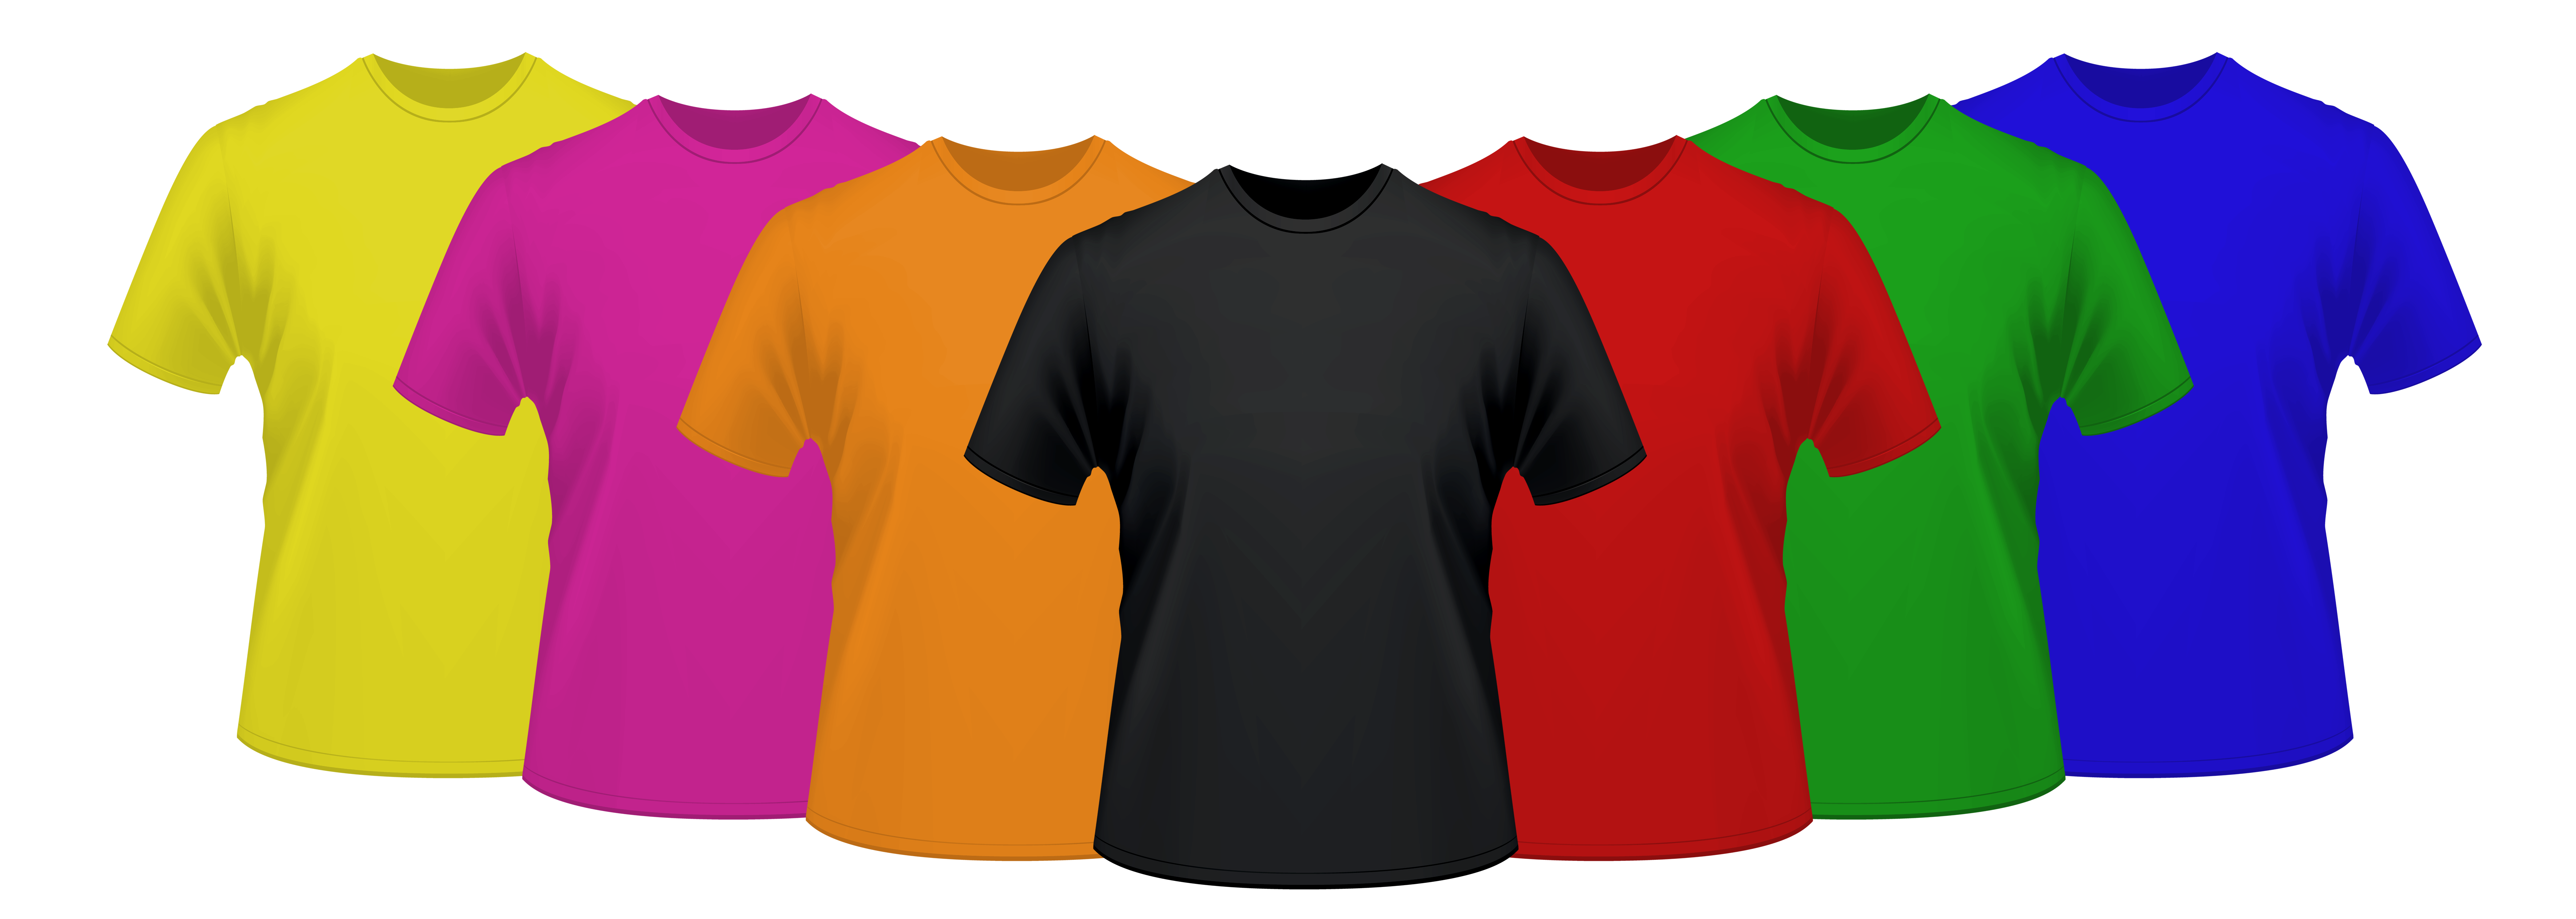 T shirt features for Where can i order custom t shirts